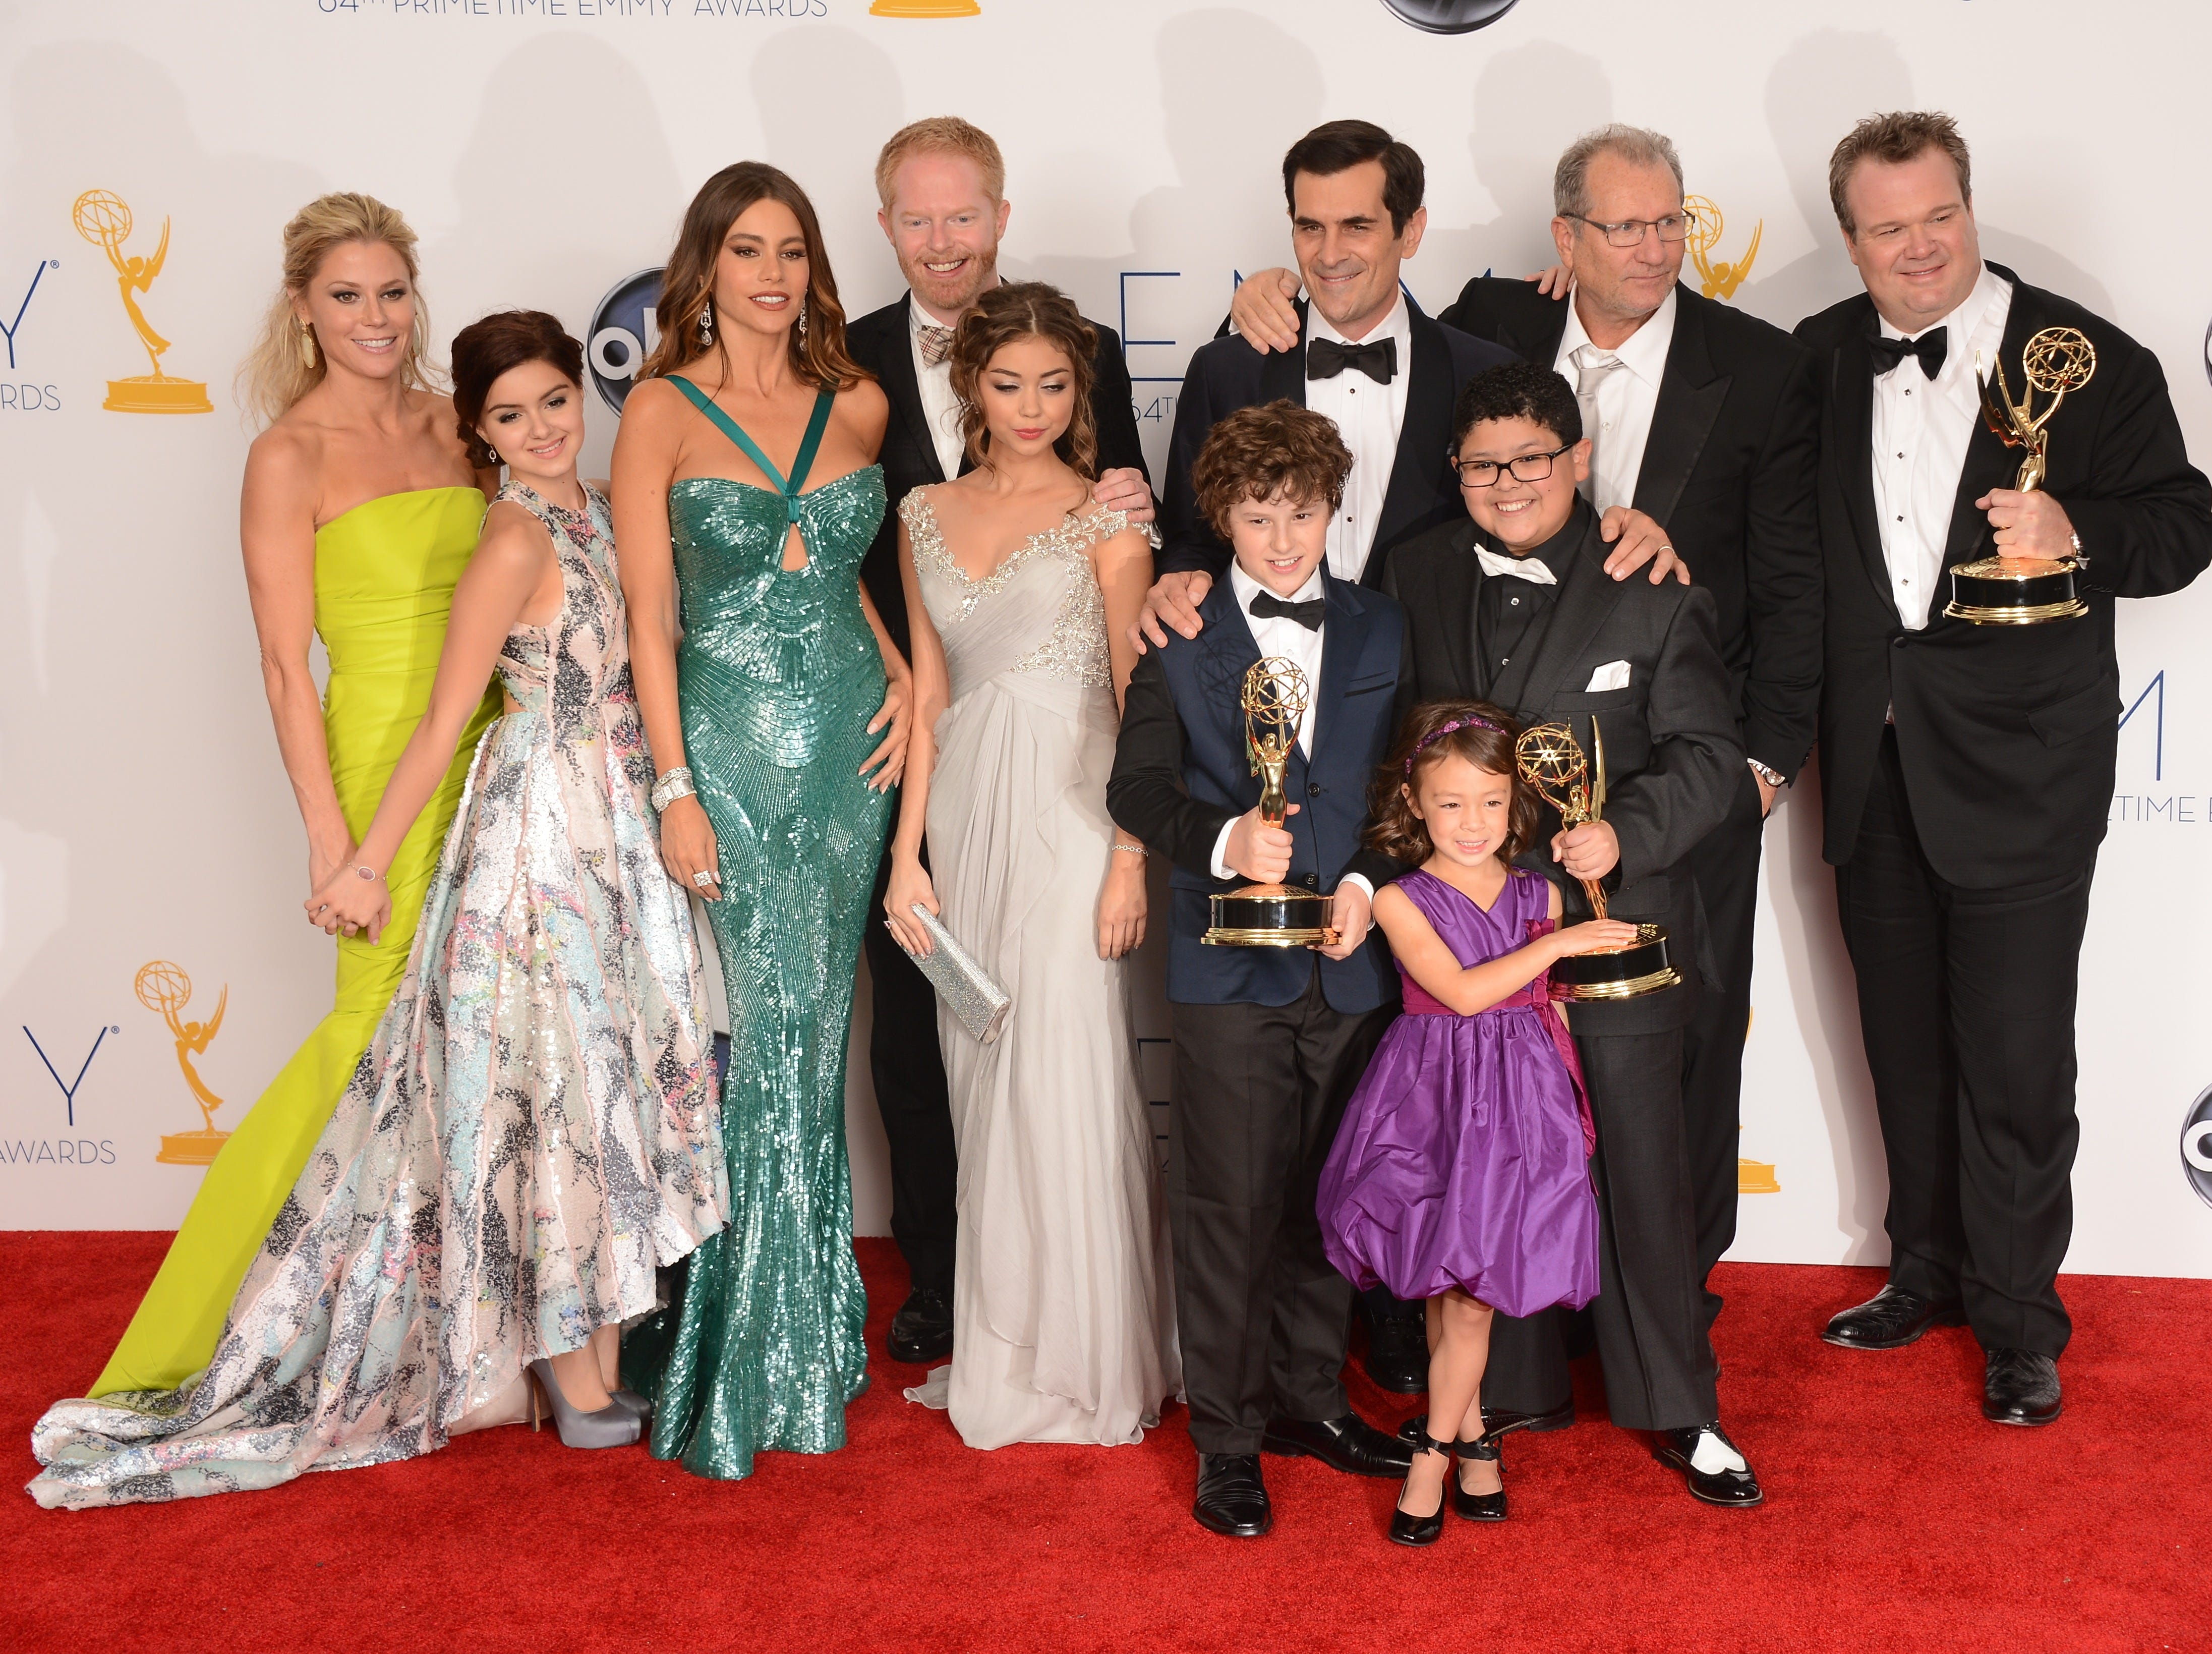 """""""Modern Family"""" has won 21 Emmy Awards, including best comedy for five years in a row from 2010-14. The full cast is seen here after their win in 2012."""